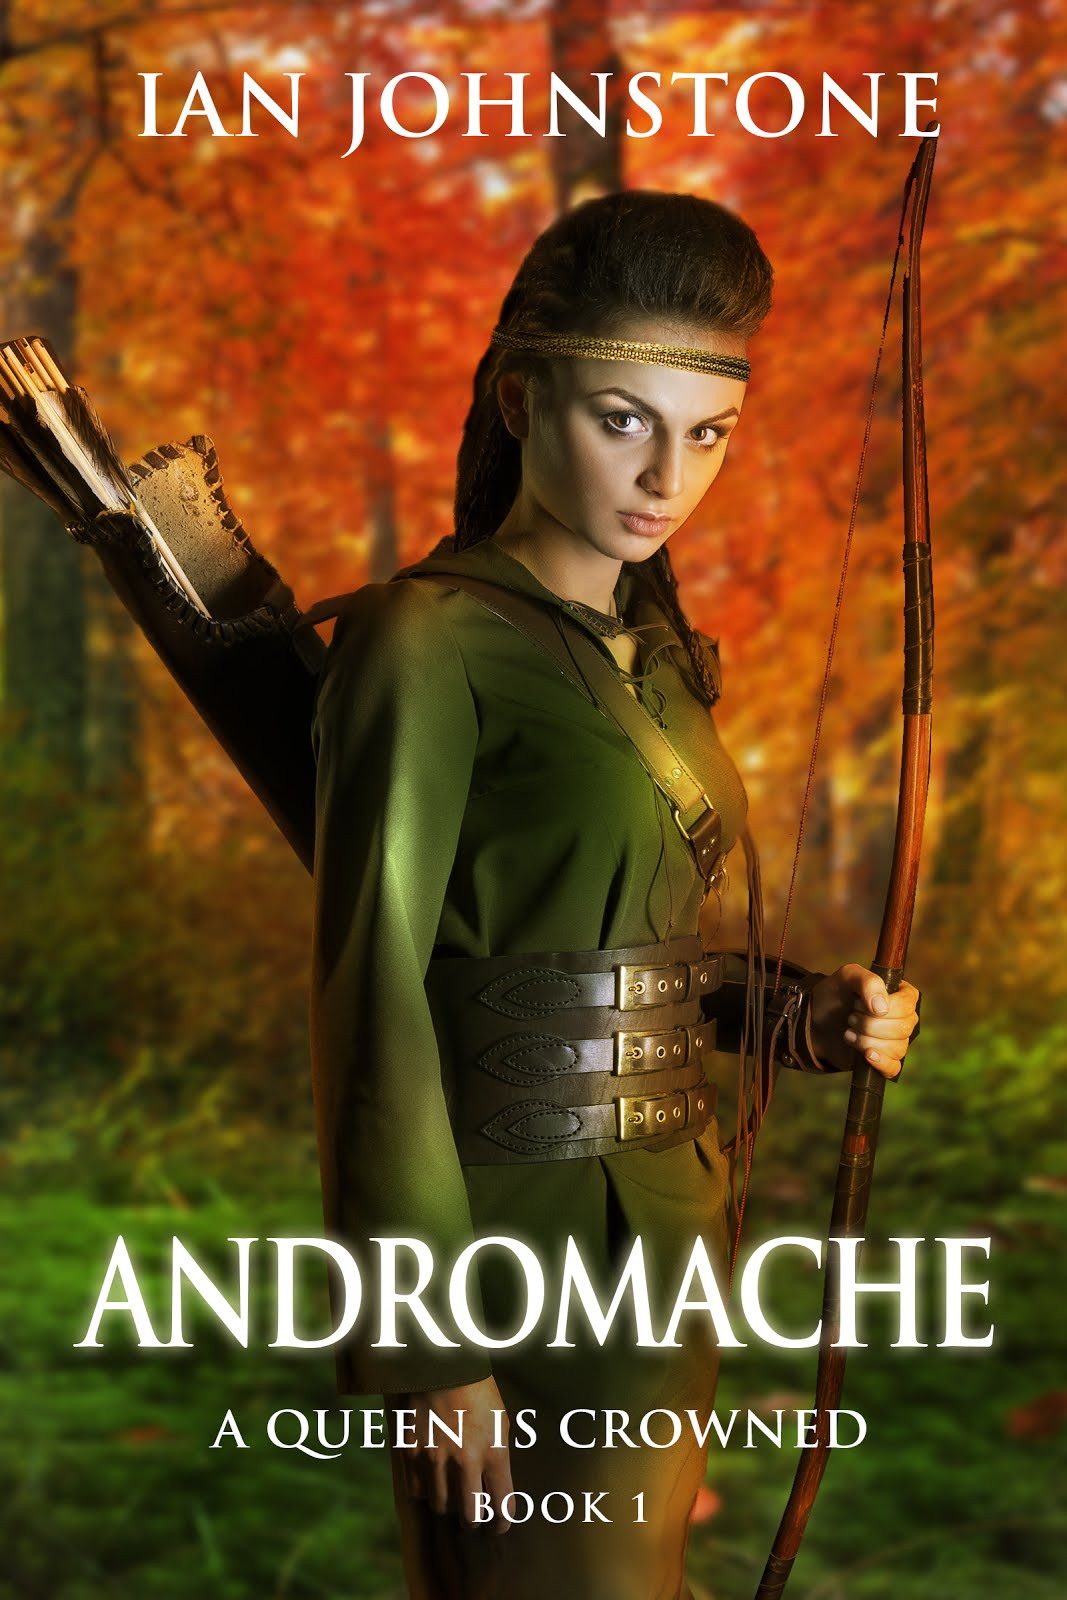 ANDROMACHE [A Queen is Crowned][1]